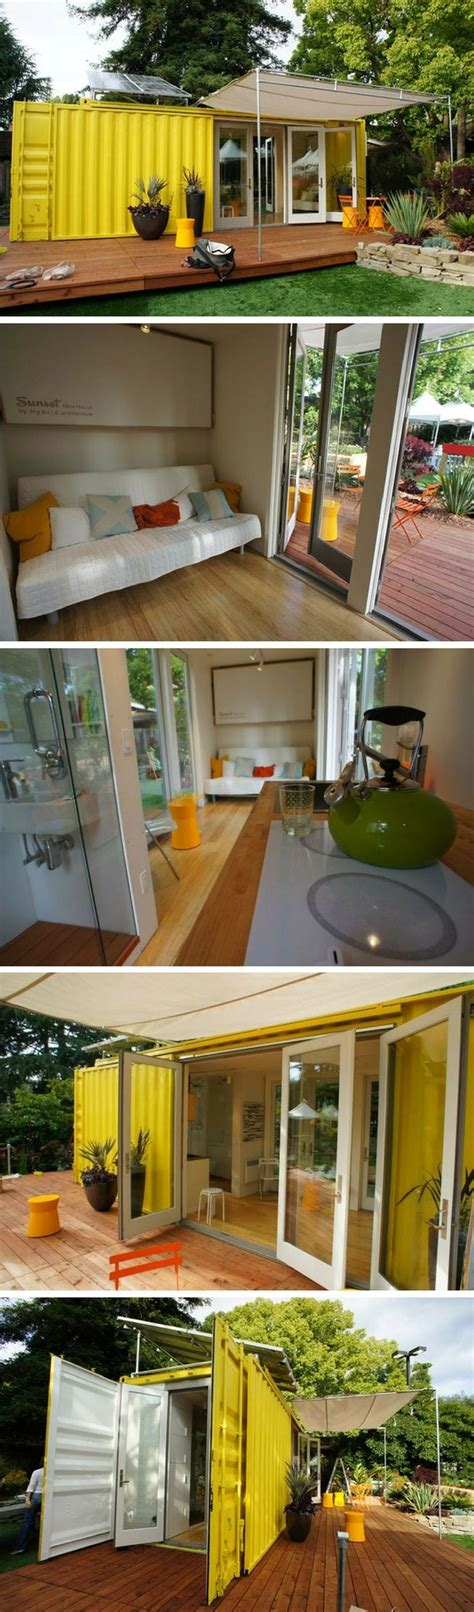 Best Shipping Container House Design Ideas 5 Amzhouse